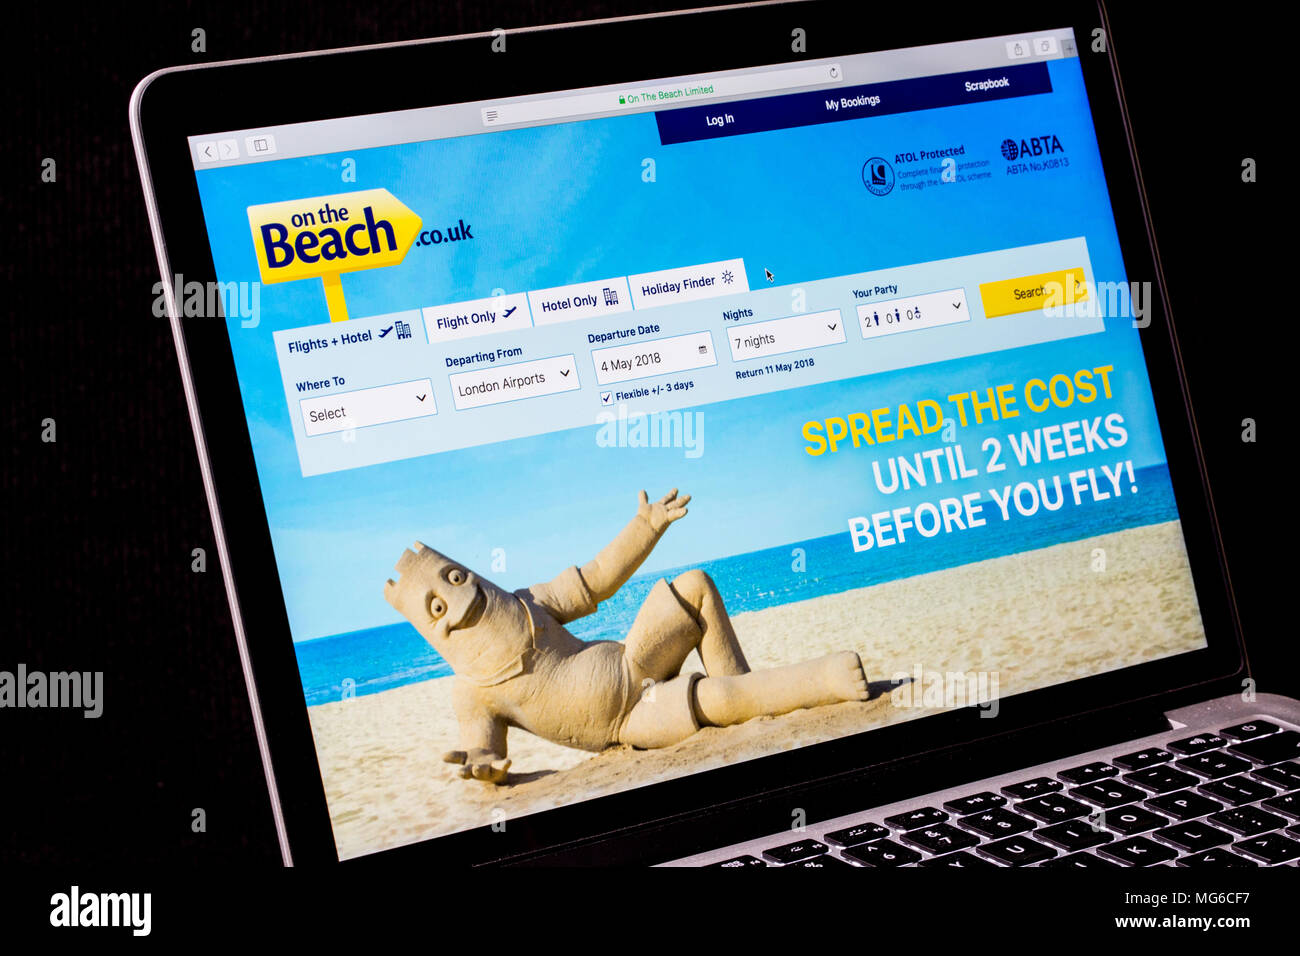 on the beach travel website on a laptop computer - Stock Image